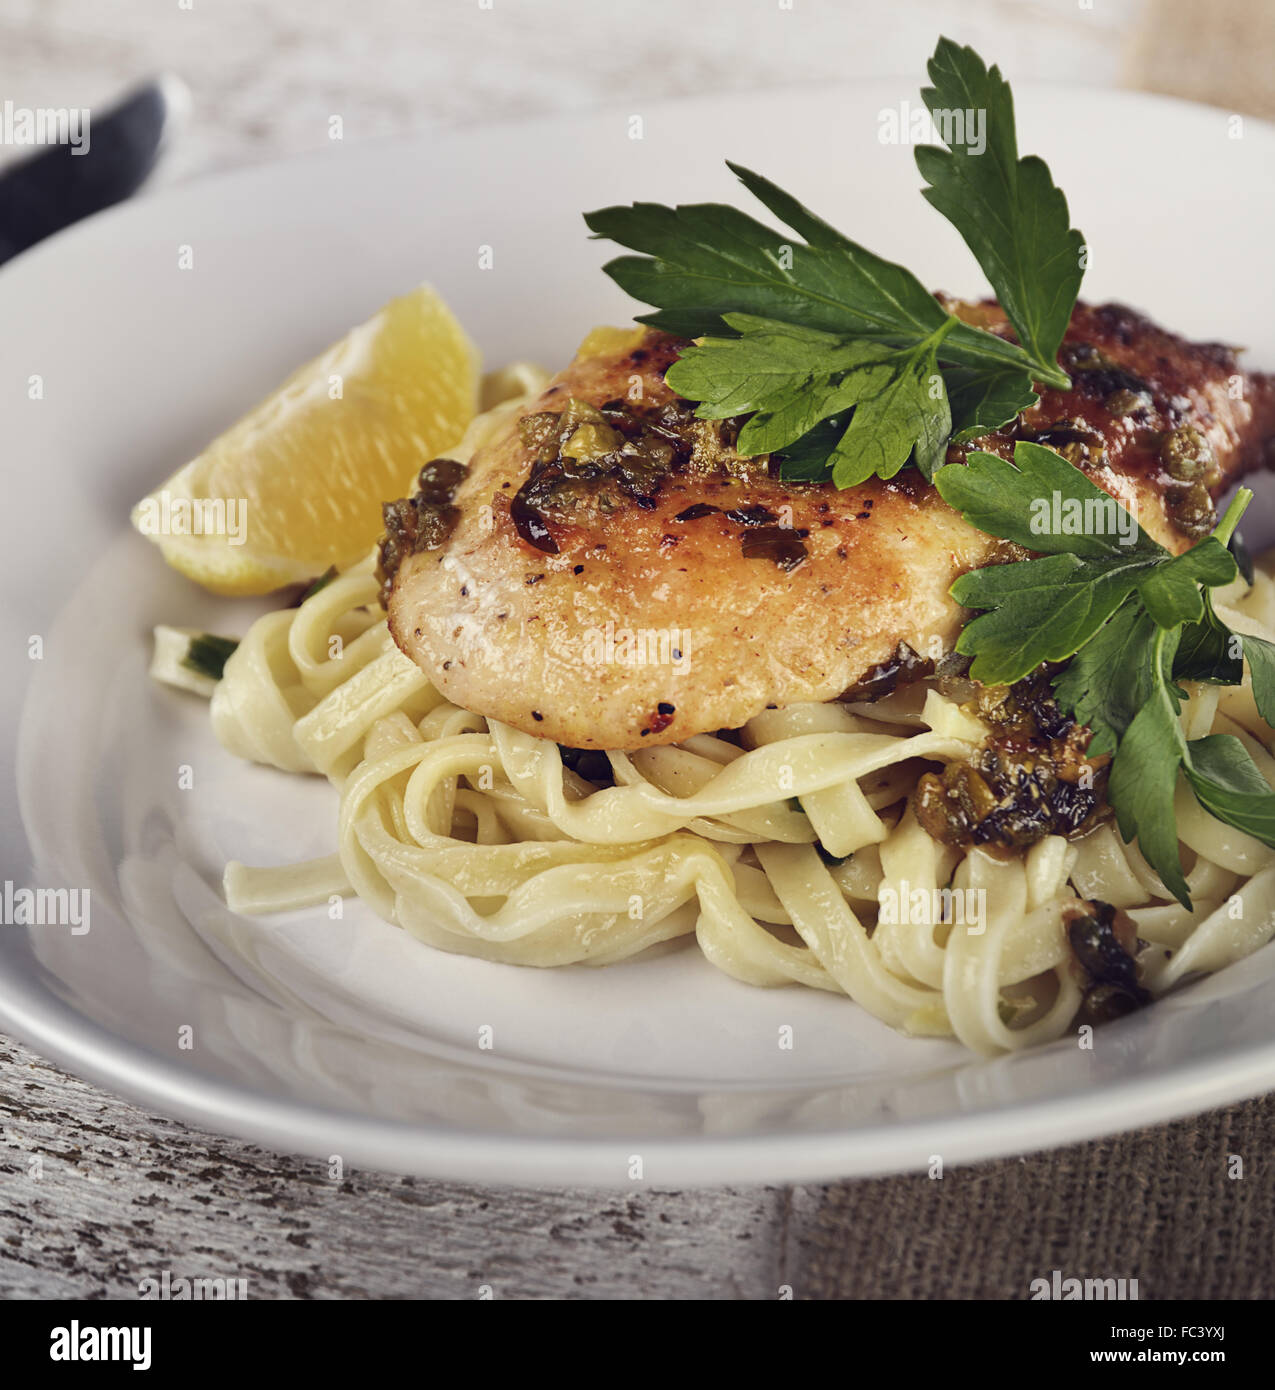 Chicken Fillet With Pasta - Stock Image